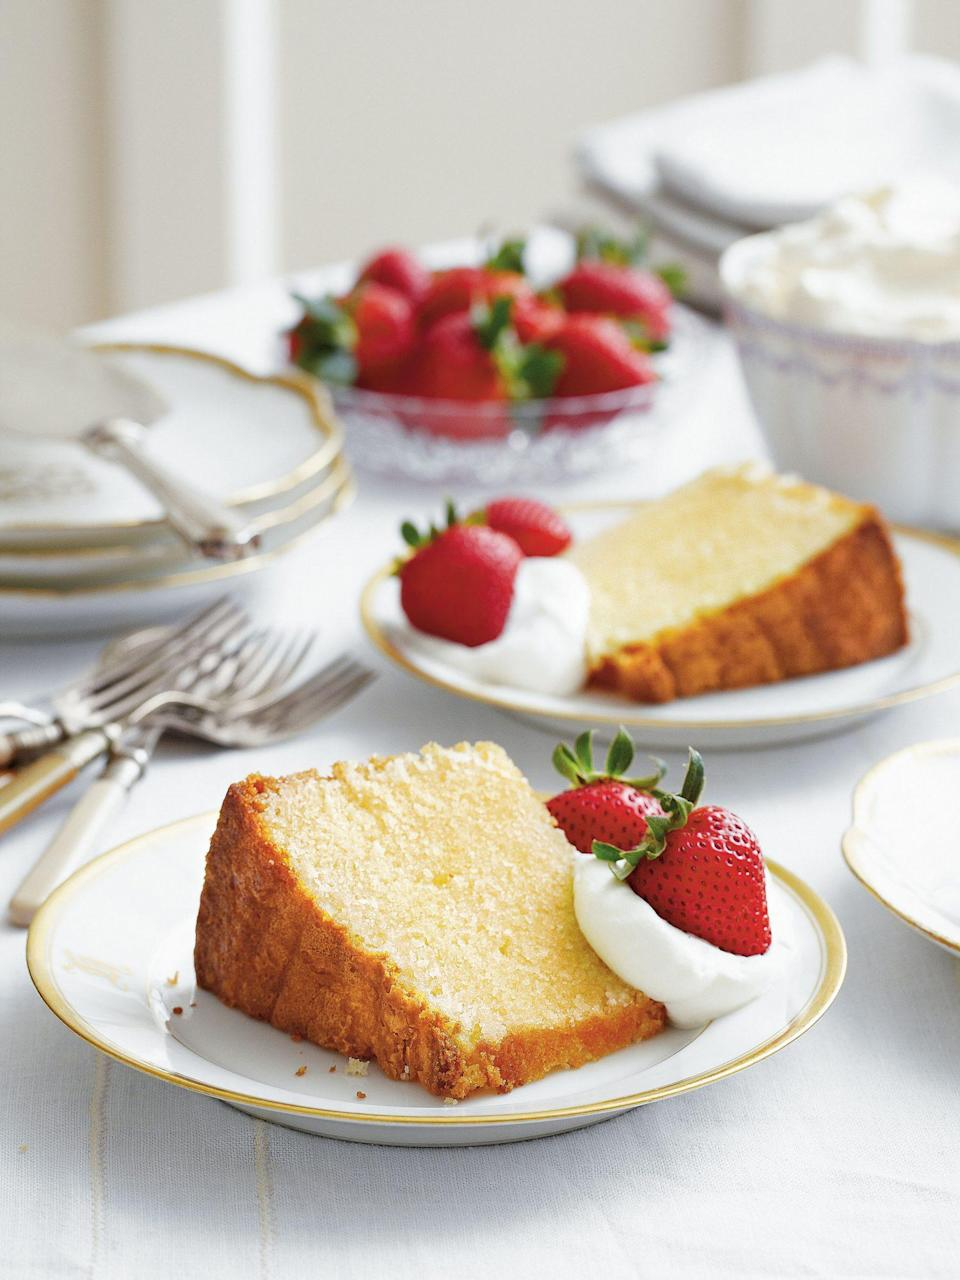 "<p><strong>Recipe: <a href=""https://www.southernliving.com/recipes/old-fashioned-pound-cake"" rel=""nofollow noopener"" target=""_blank"" data-ylk=""slk:Old-Fashioned Pound Cake"" class=""link rapid-noclick-resp"">Old-Fashioned Pound Cake</a></strong></p> <p>Every budding baker should learn how to make one of these beauties, and who better to teach than Grandma?</p>"